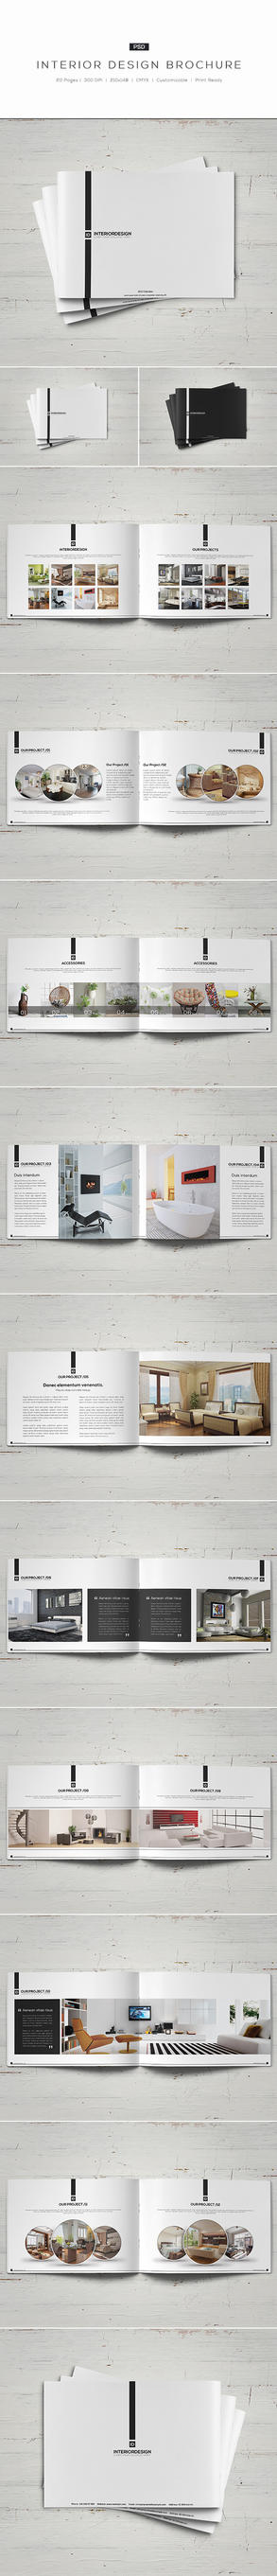 Interior Design Brochure by shapshapy